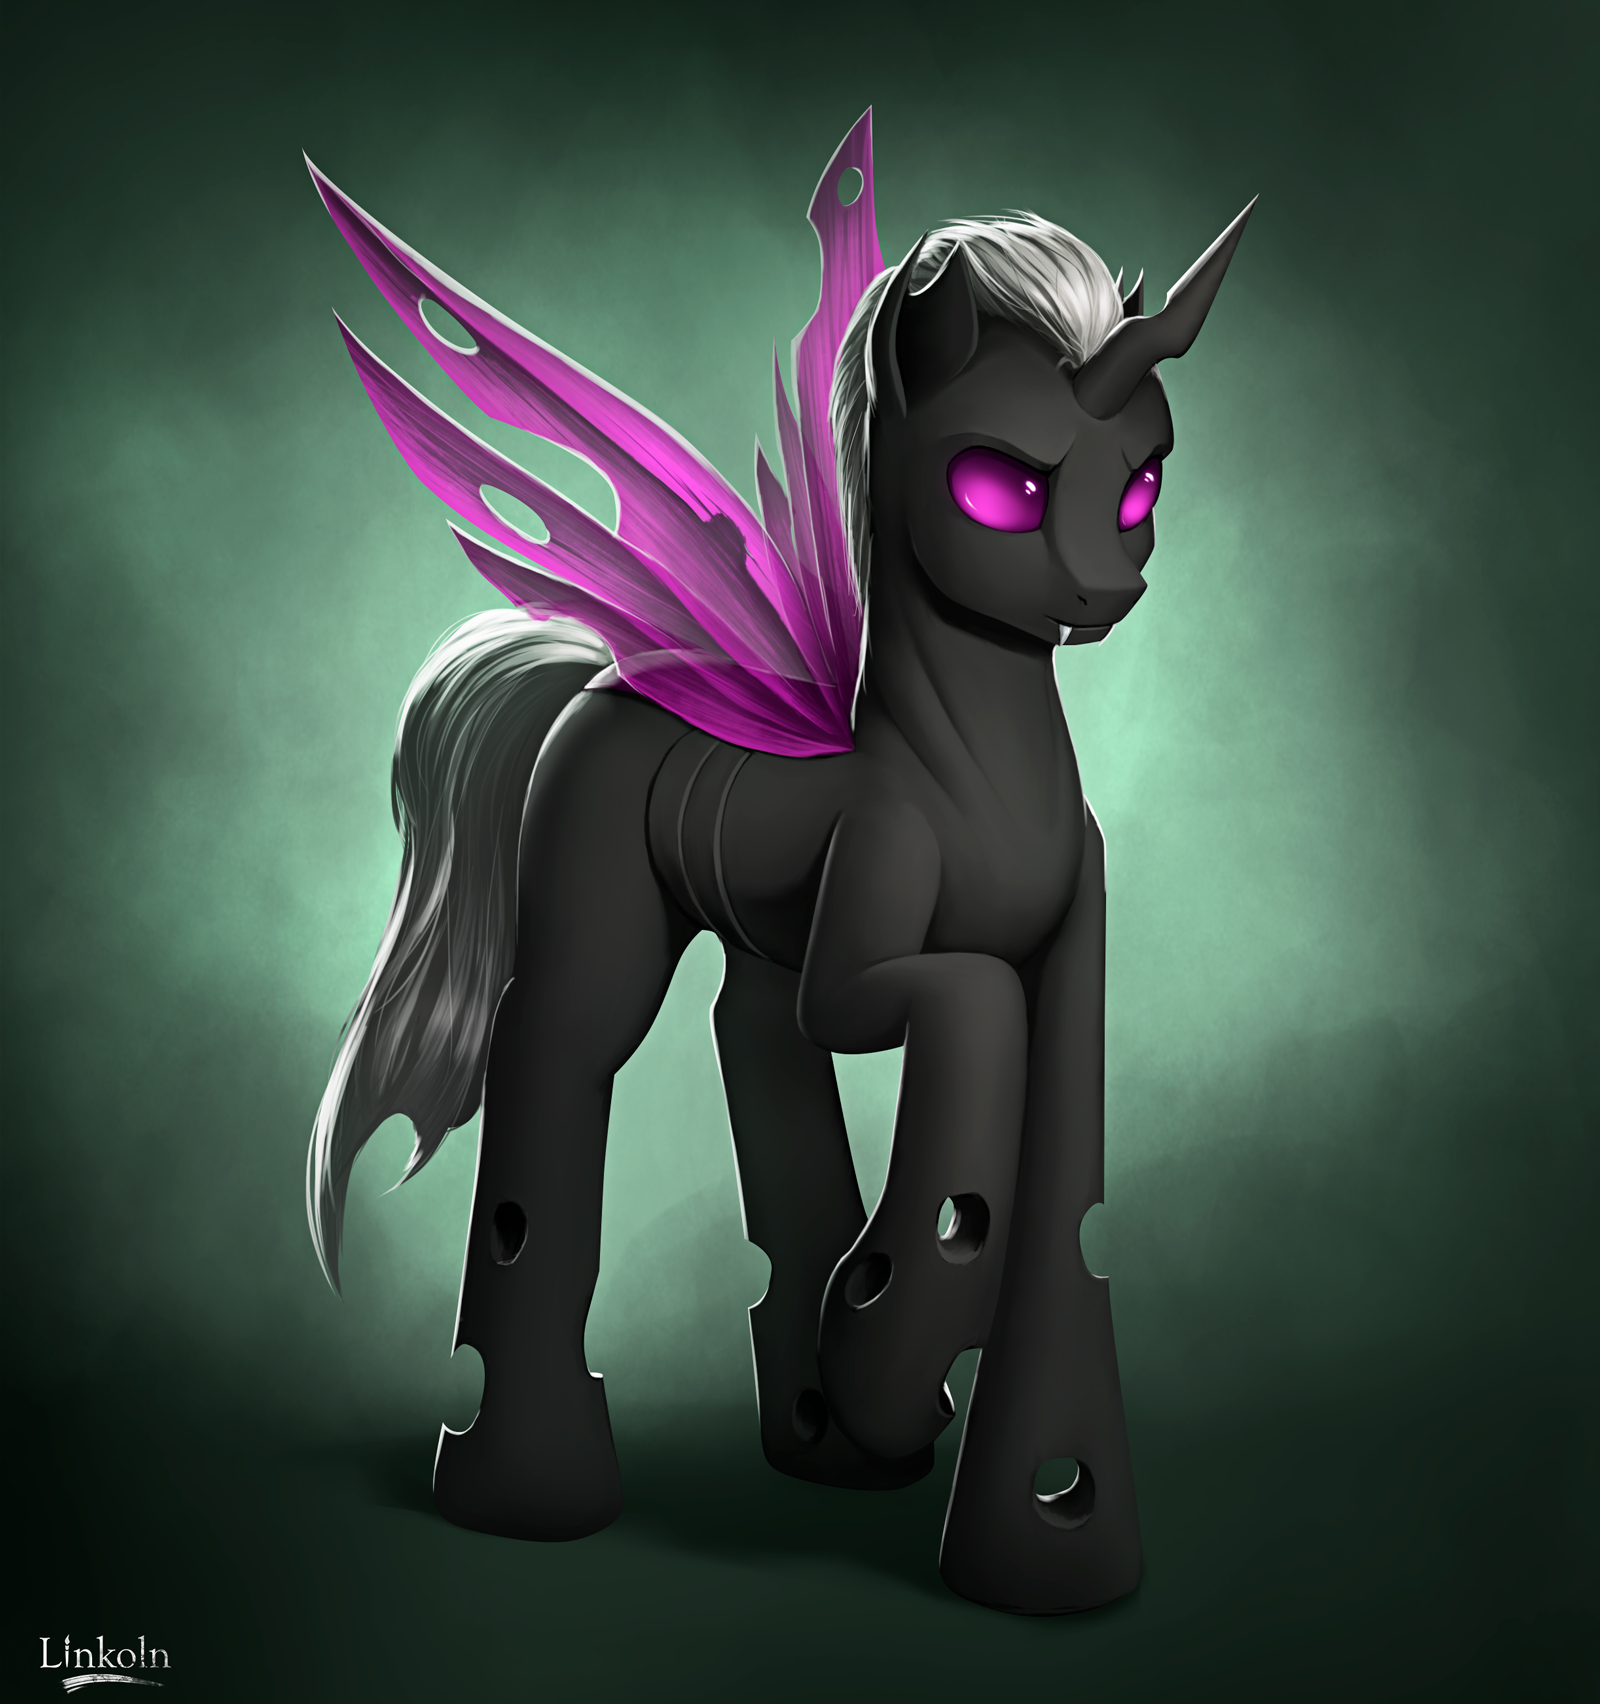 e926 changeling fan_character feral gradient_background grey_hair hair hi_res hooves horn insect_wings l1nkoln male my_little_pony purple_eyes simple_background solo white_hair wings